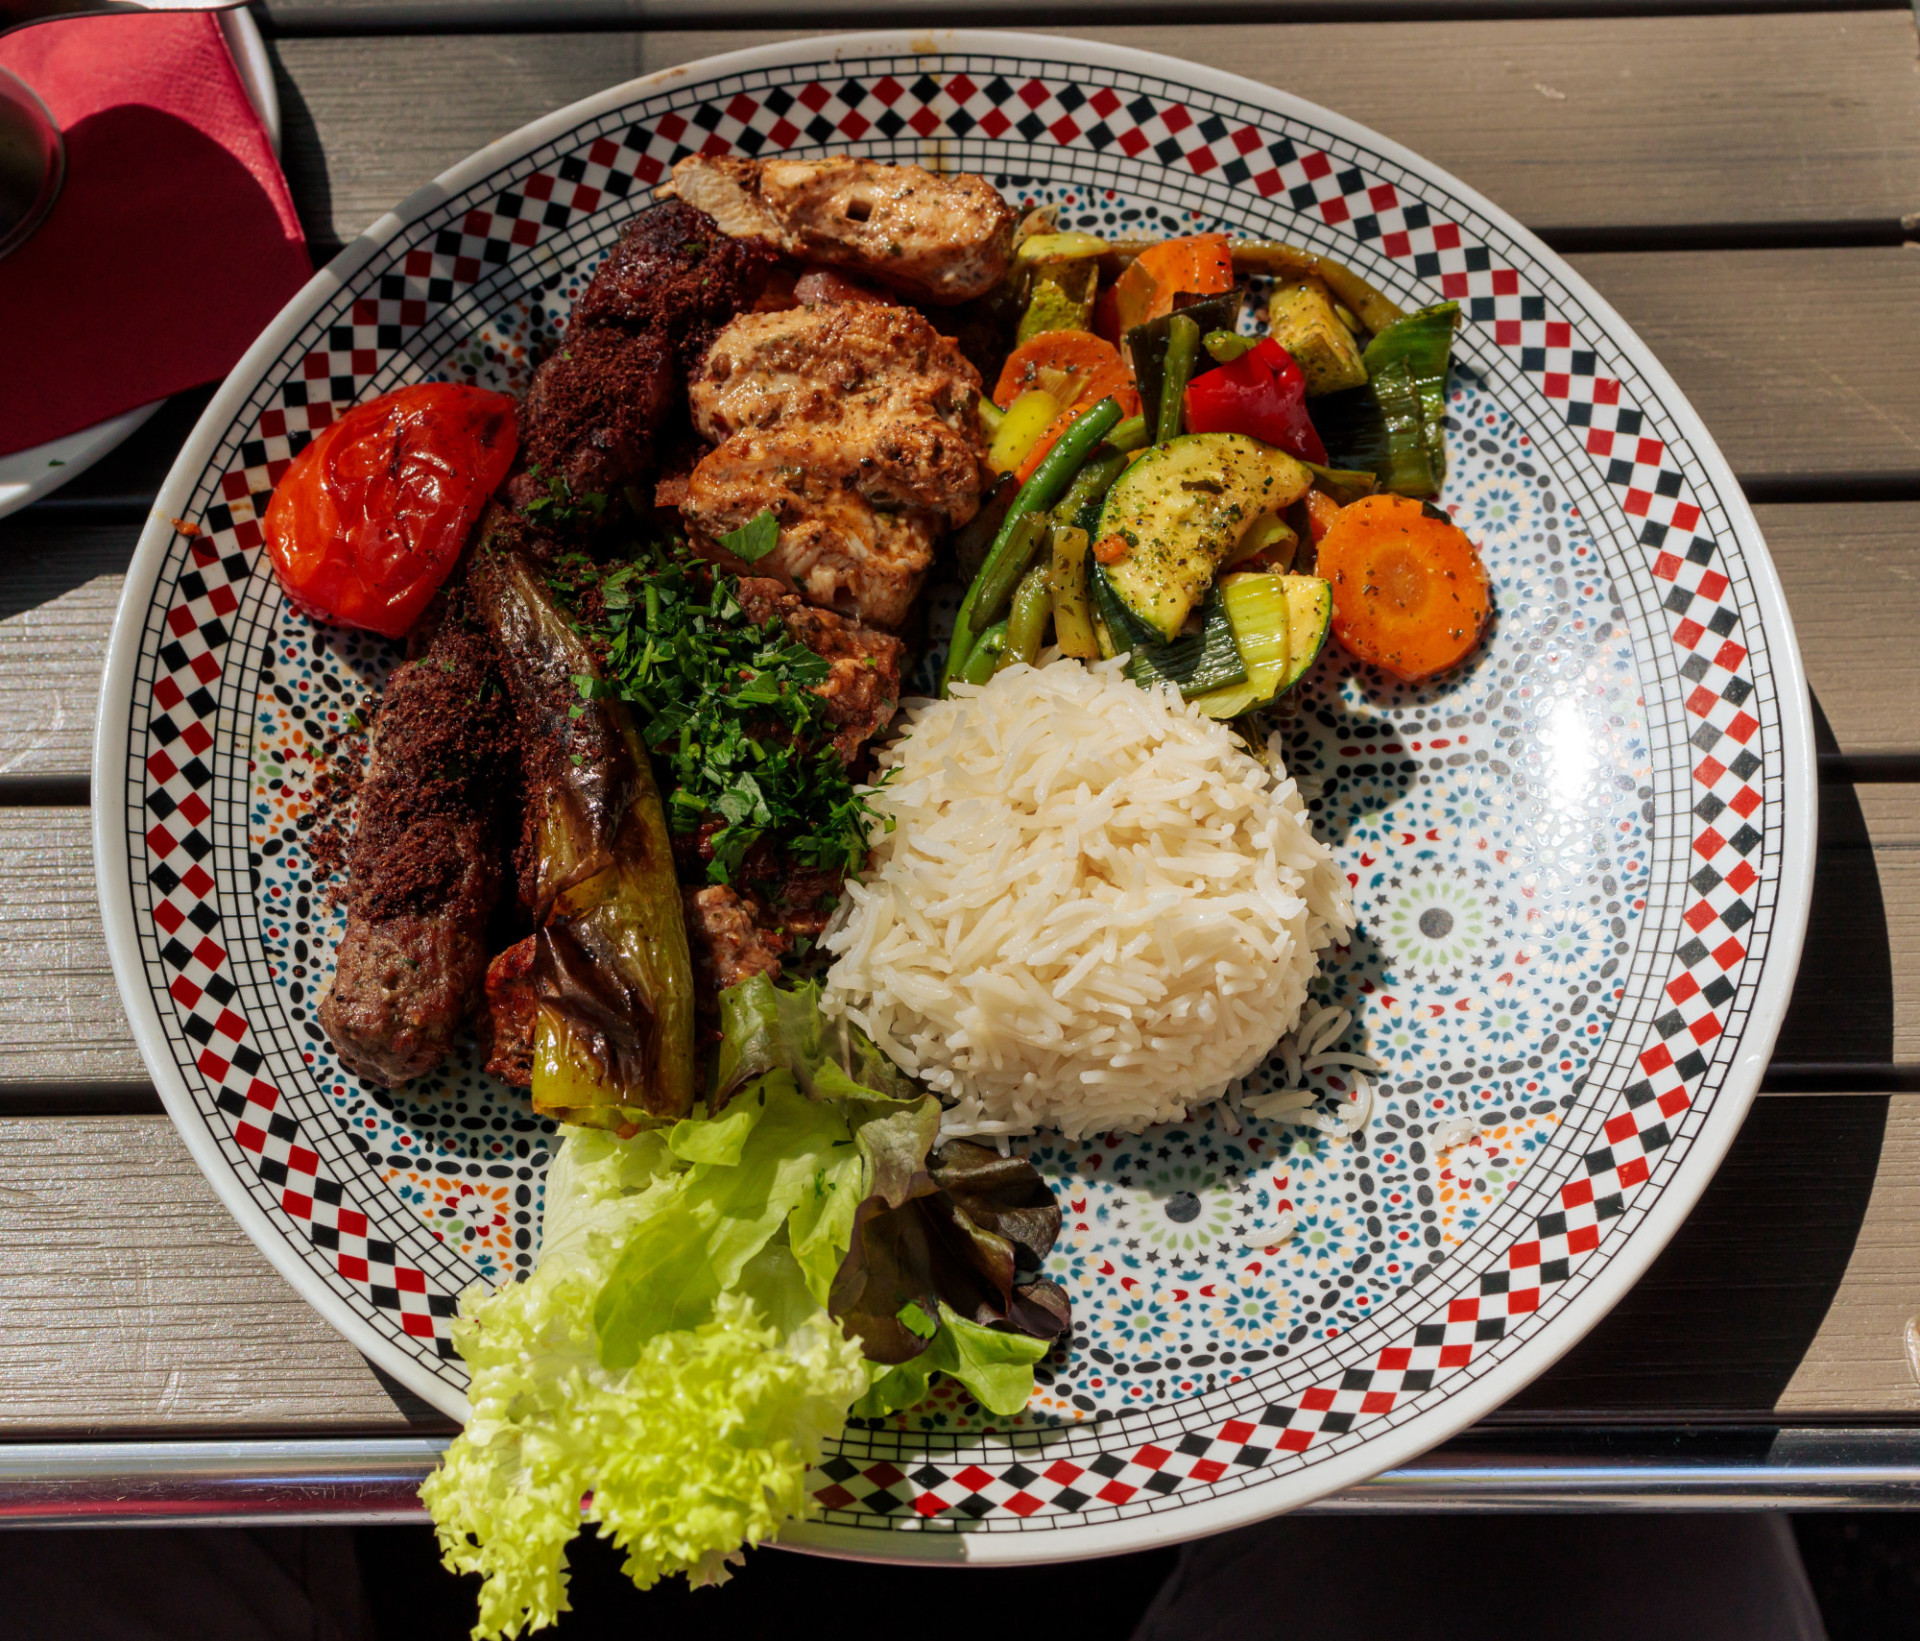 Plate with Arabic meat skewers served with rice and grilled vegetables